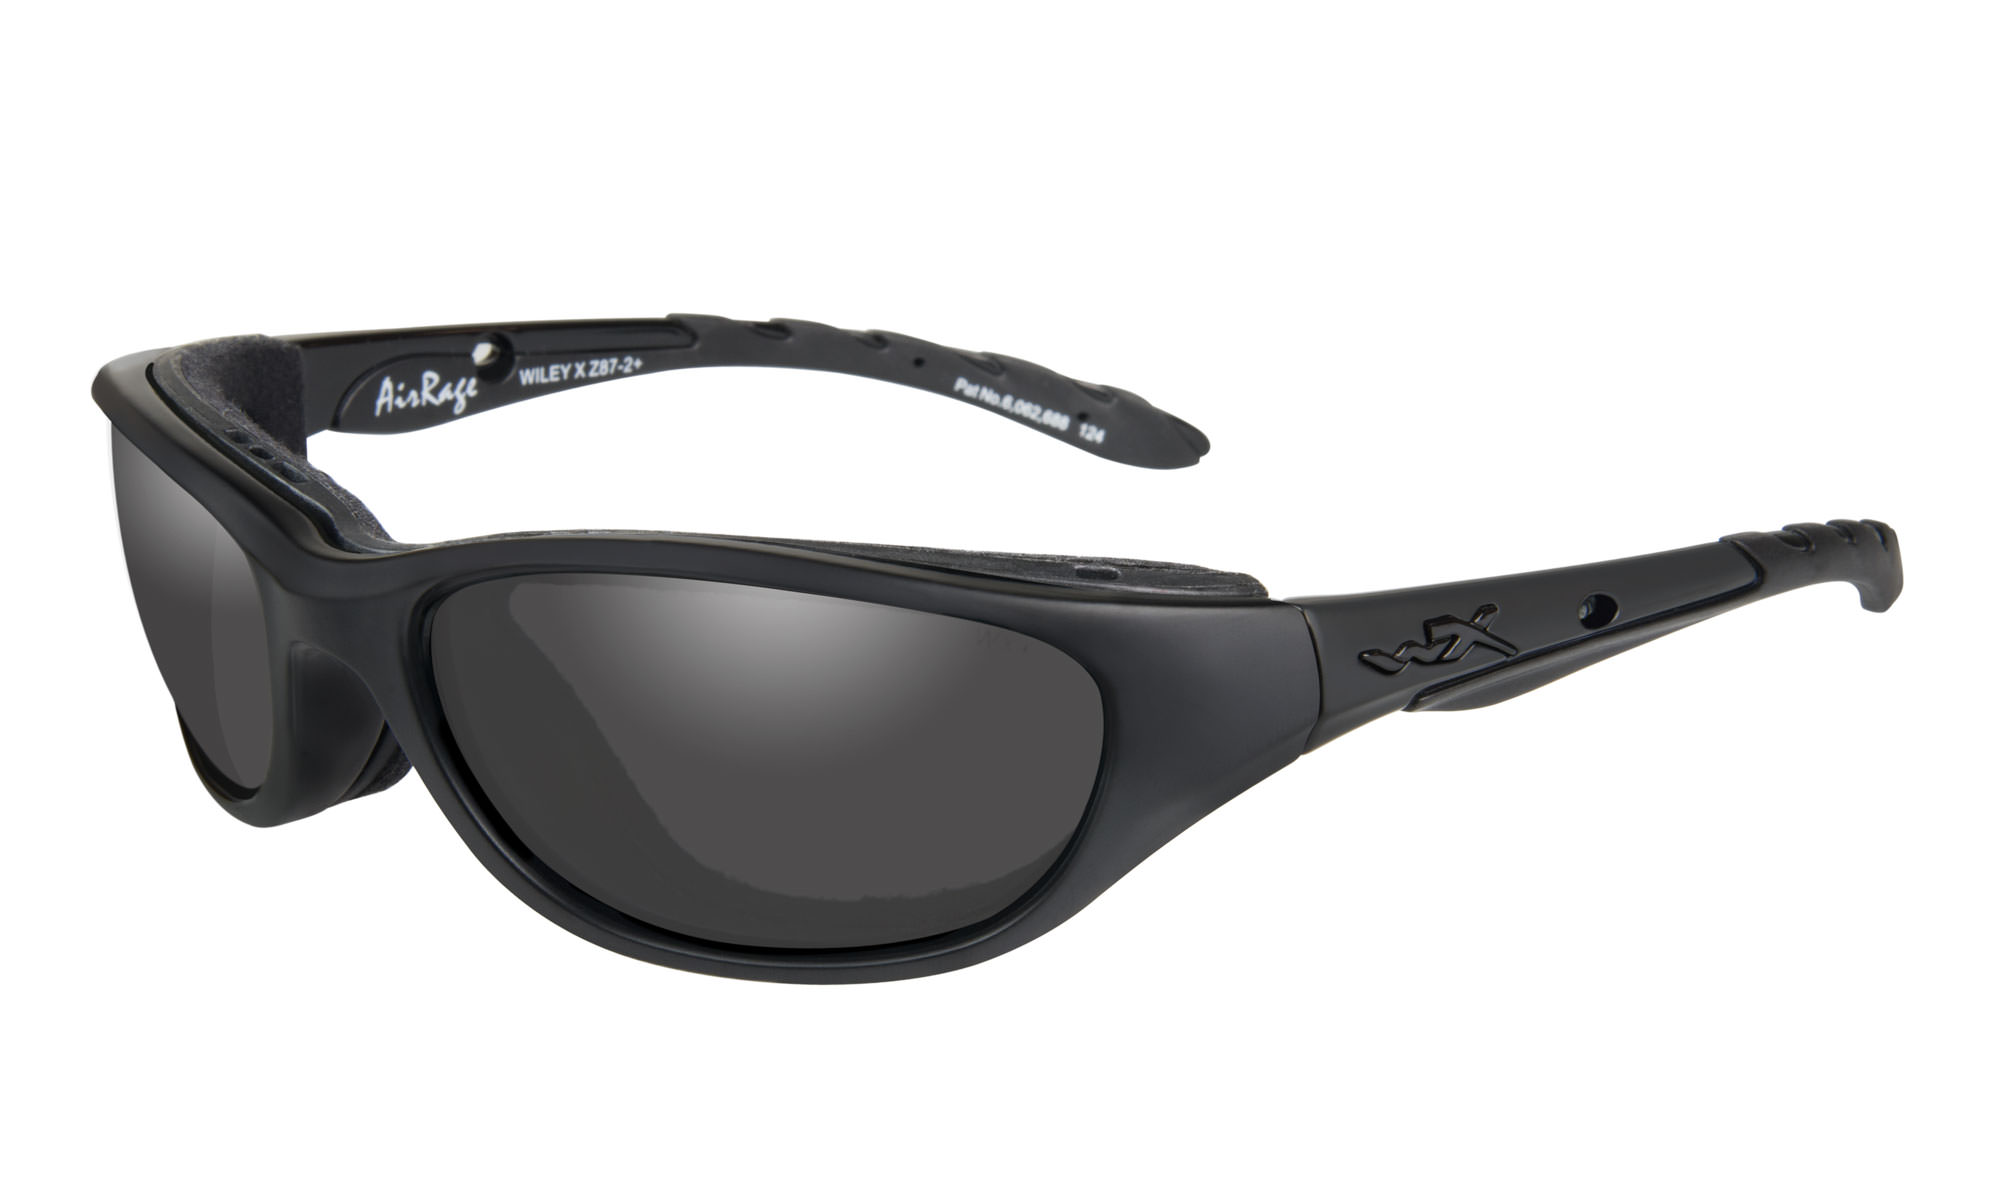 1d976a7a2d7b Wiley-X Airrage Matte Black with Smoke Grey Lenses | Wiley X